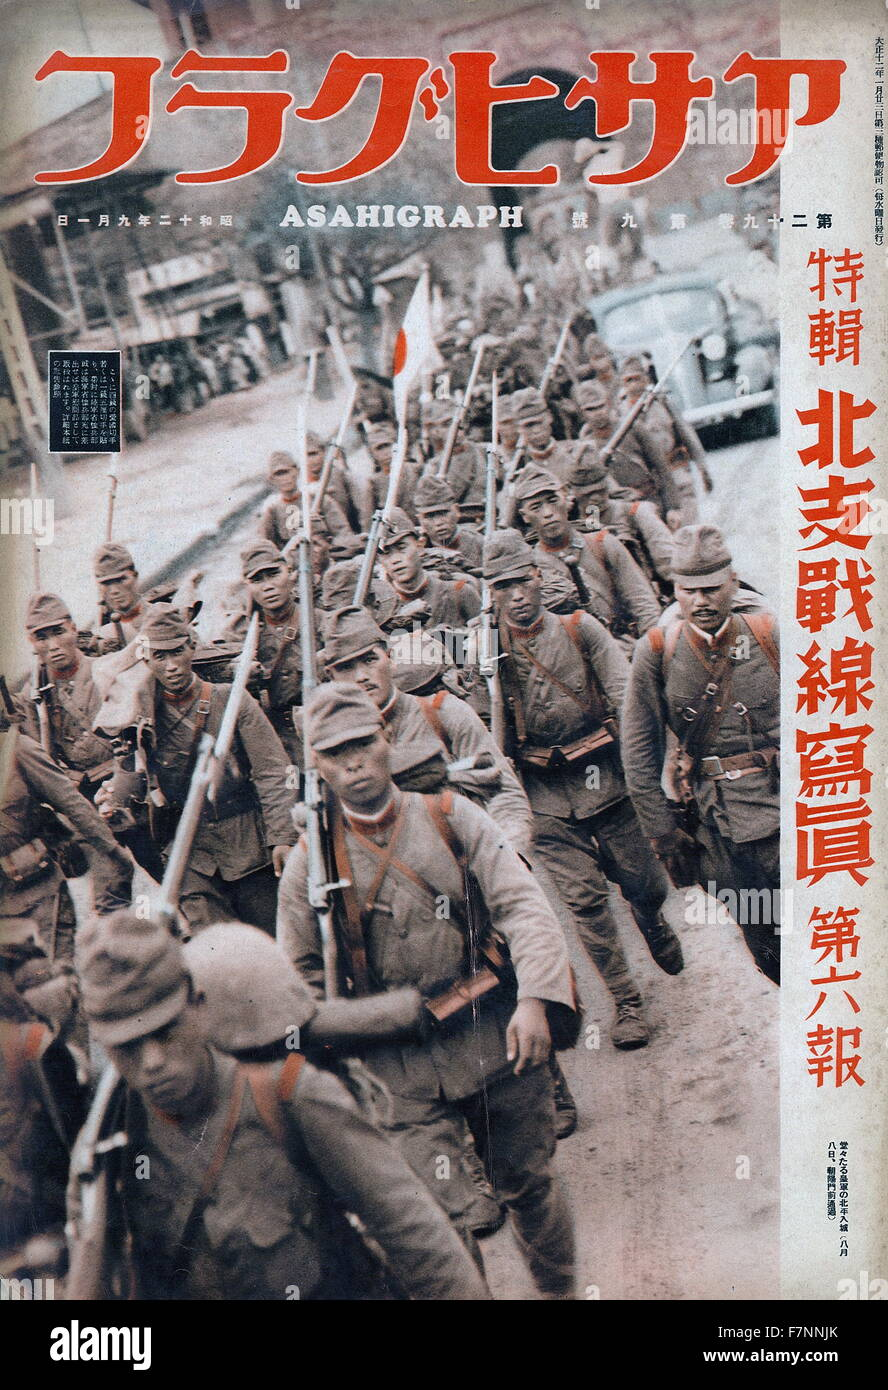 Japanese soldiers entering China during the invasion of 1937 - Stock Image